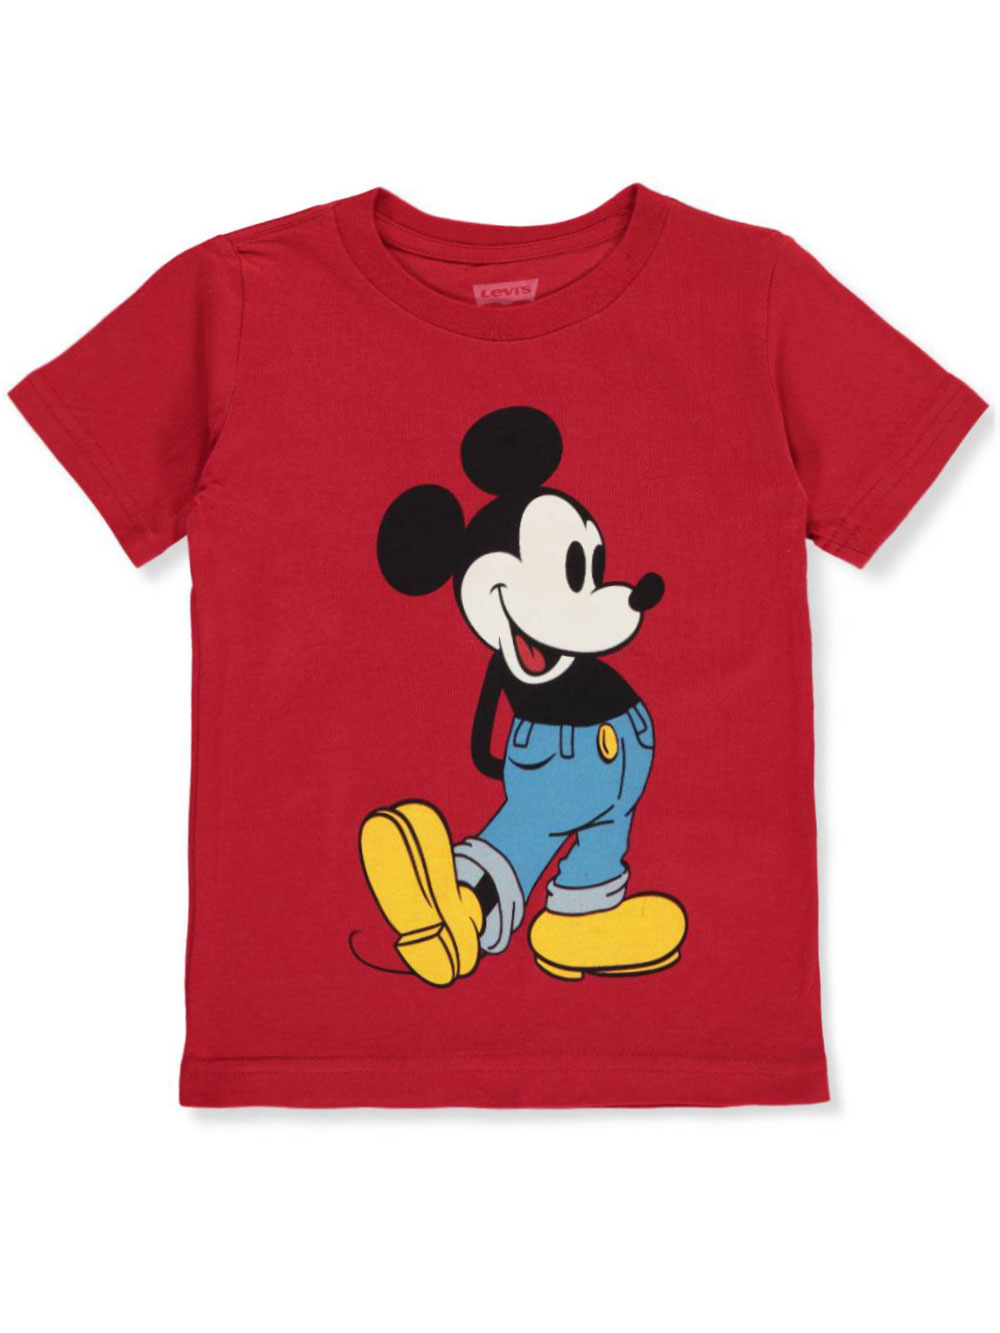 Boys Toddlers Mickey Mouse Cartoon Print T Shirt Kids Casual Top 12 mths Only